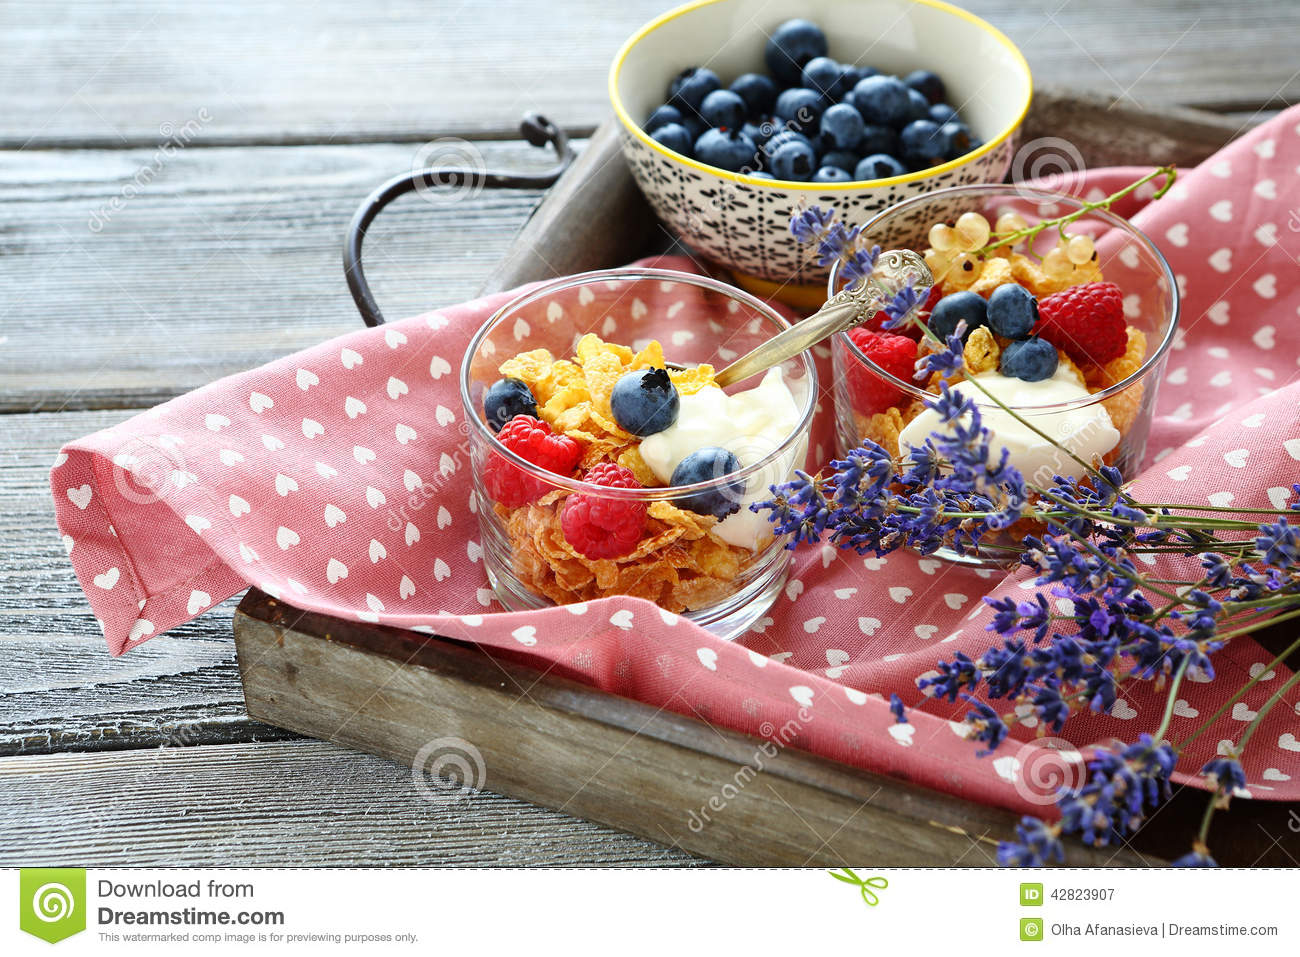 Download Healthy Breakfast For Two.Oat Flake, Berries And Flowers Stock Image - Image of muesli, healthy: 42823907